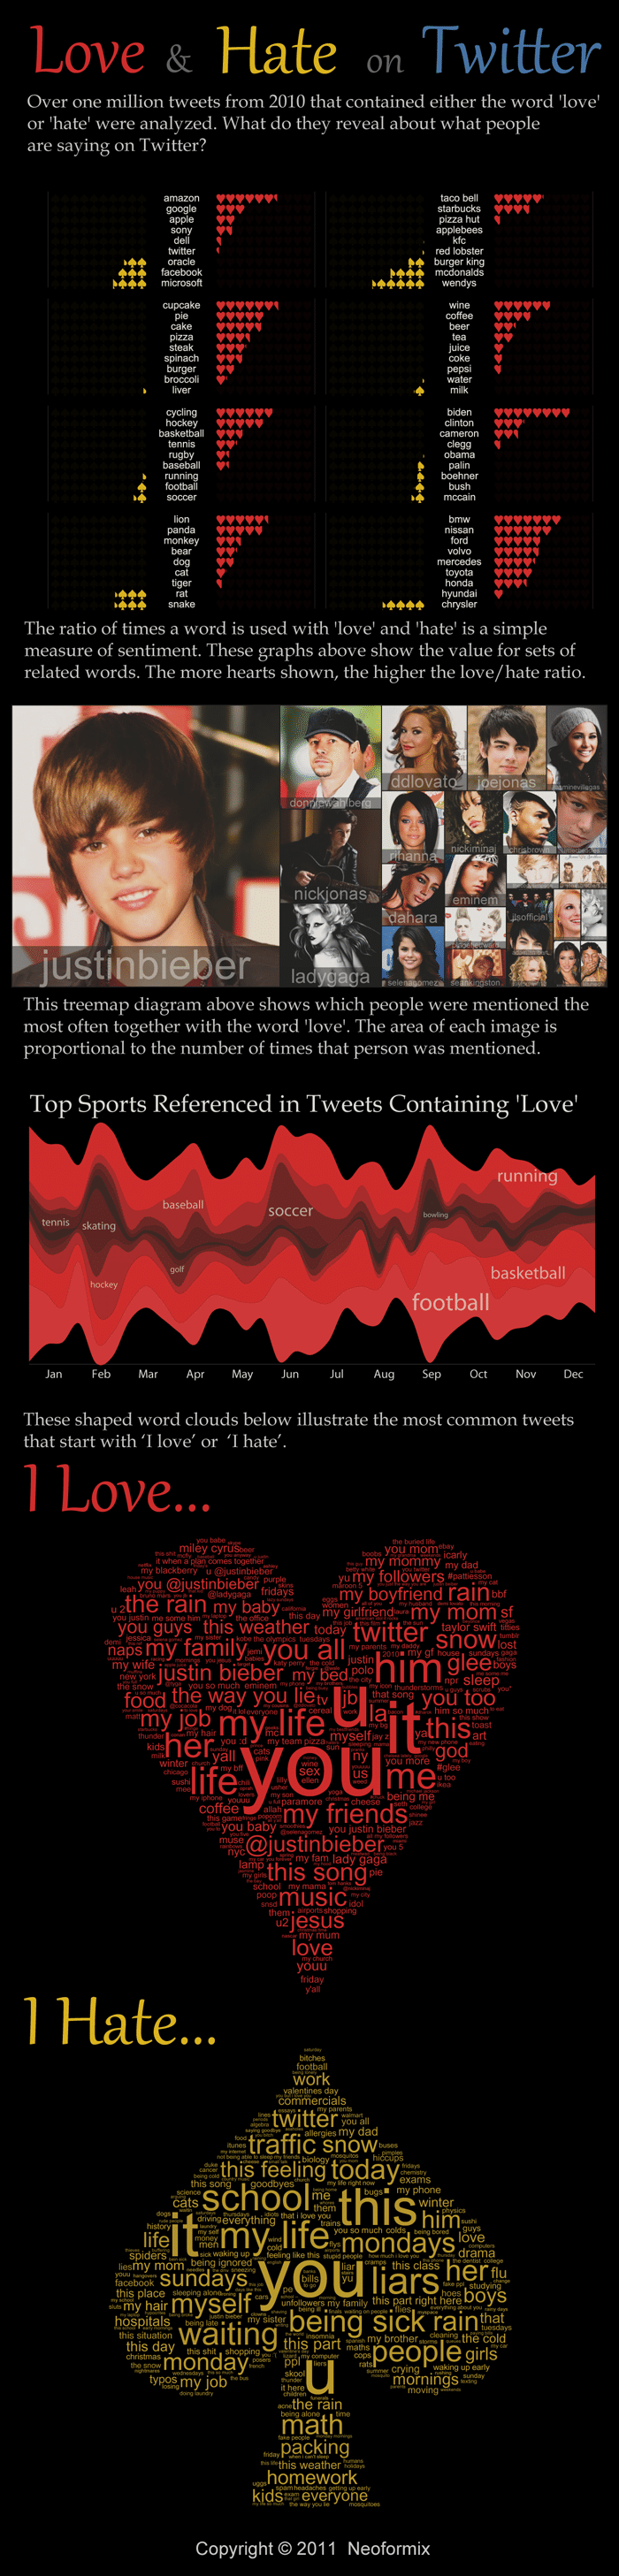 What People Love And Hate On Twitter [Infographic]